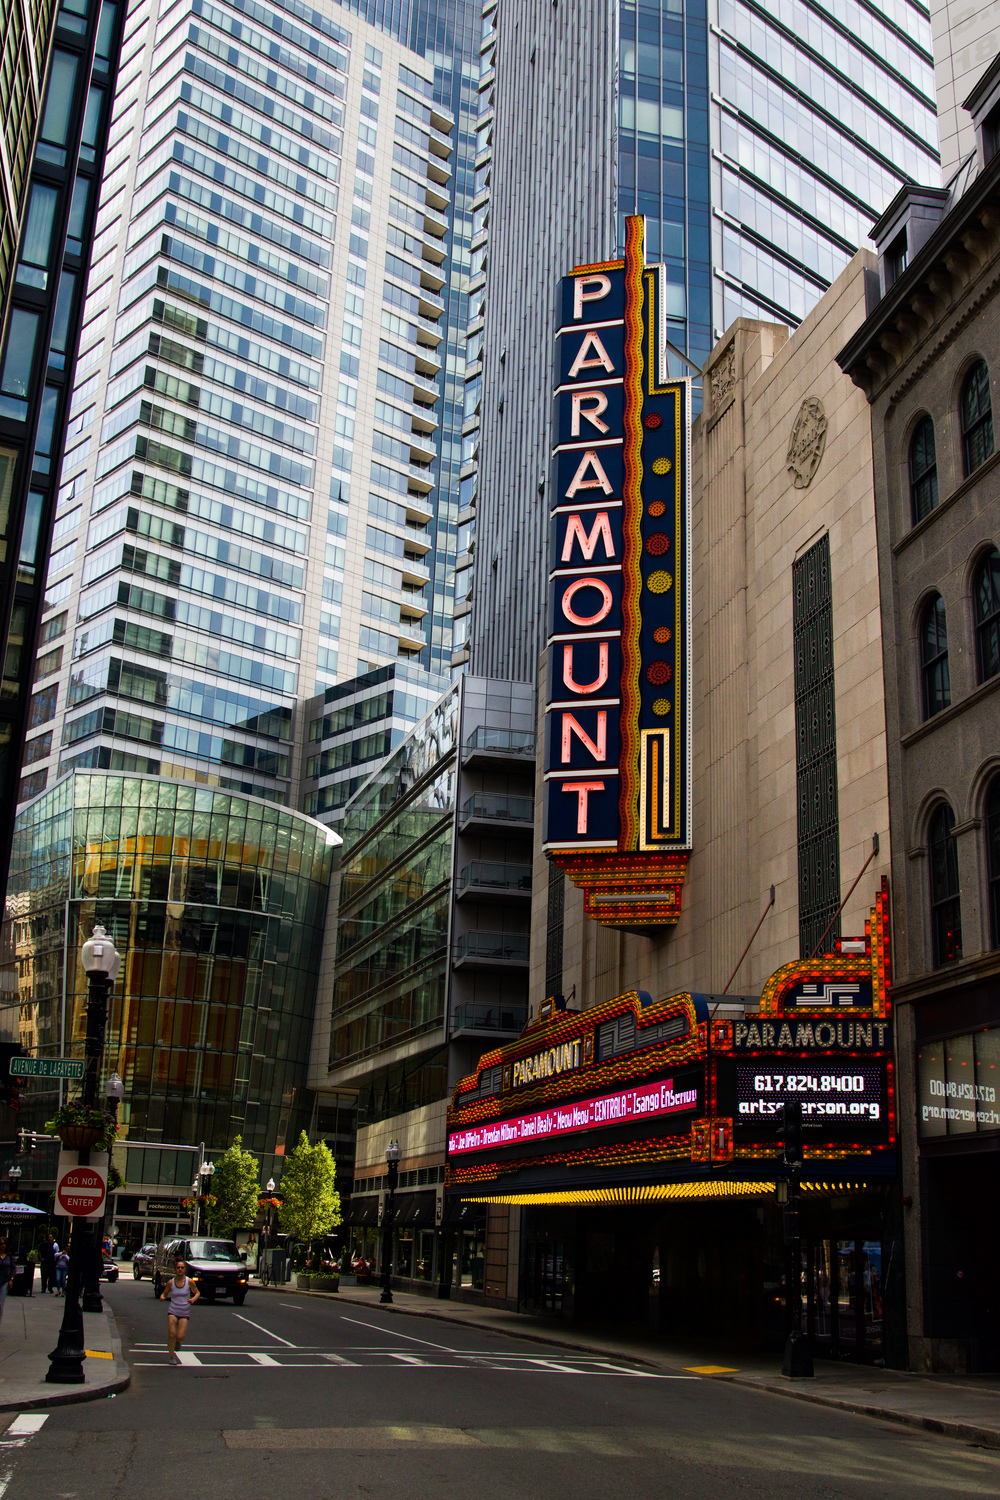 Paramount Theatre half a block away from my brother's apartment.